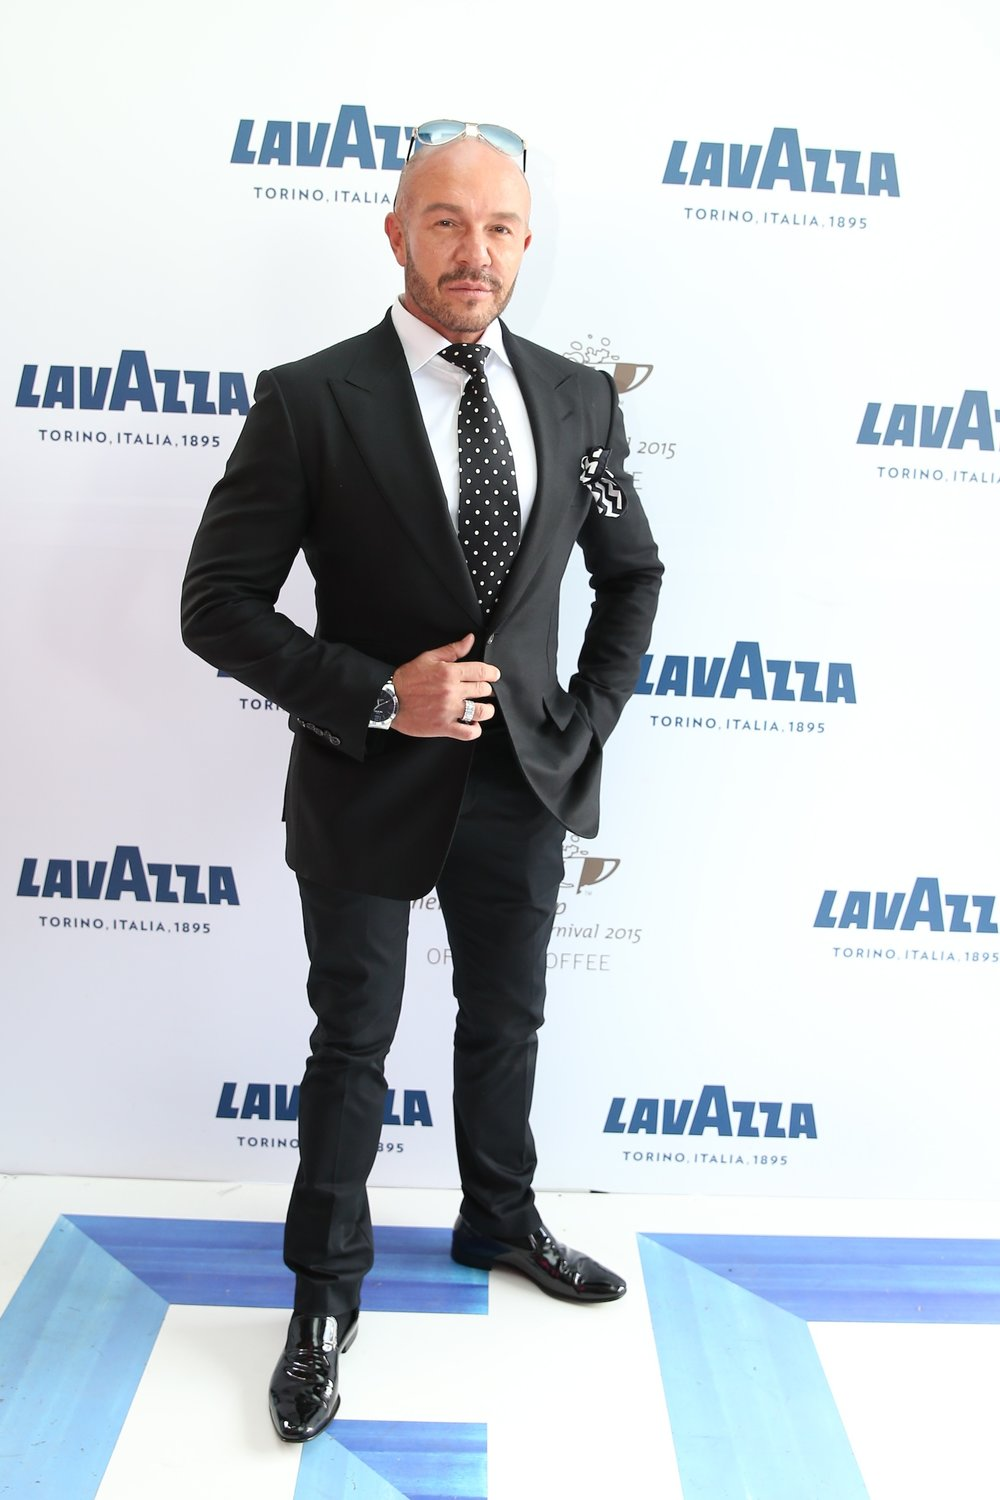 lavazza-mcc-2015-alex-perry.jpg